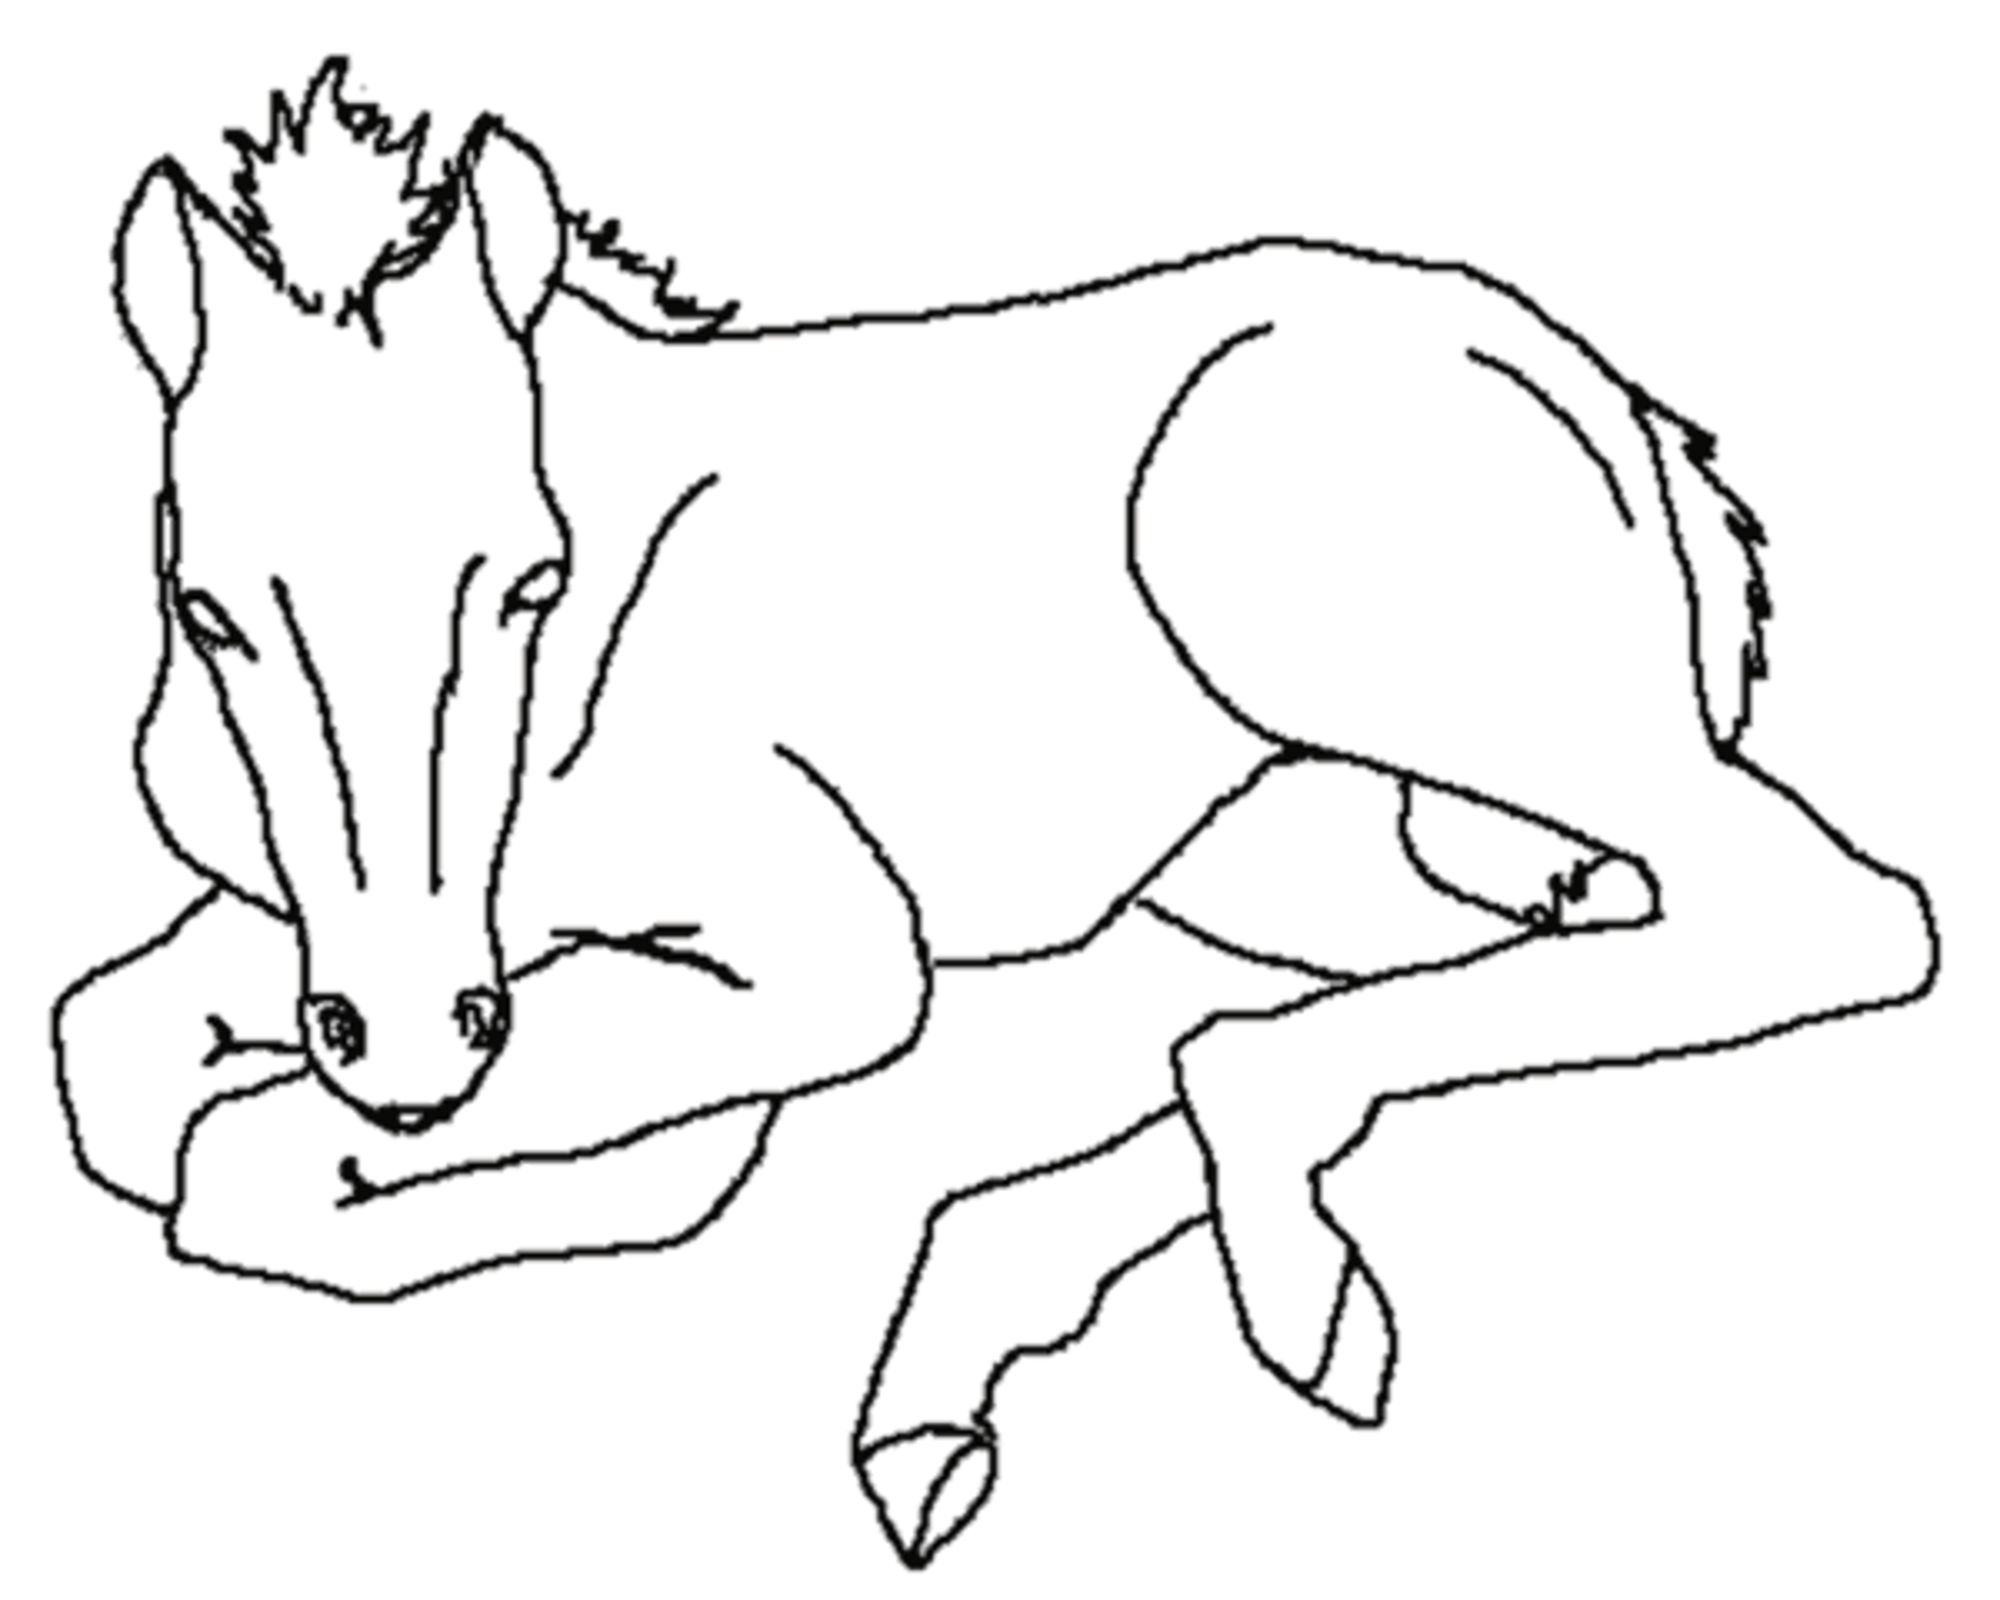 horse coloring sheets fun horse coloring pages for your kids printable horse sheets coloring